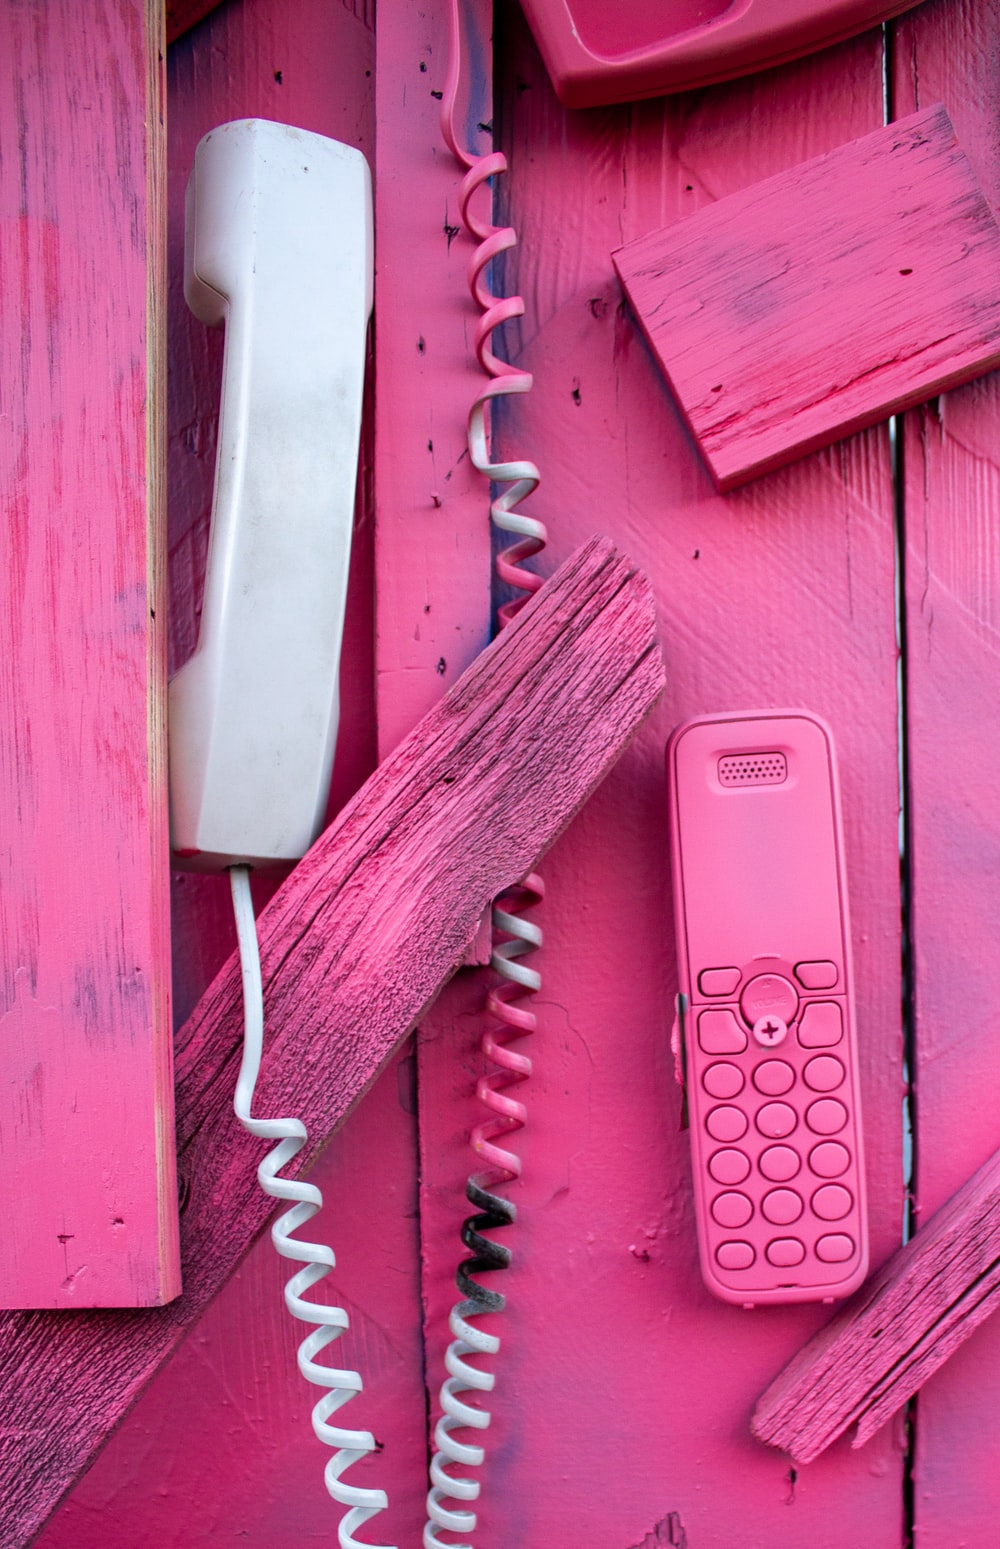 pink samsung smartphone beside green and white strap